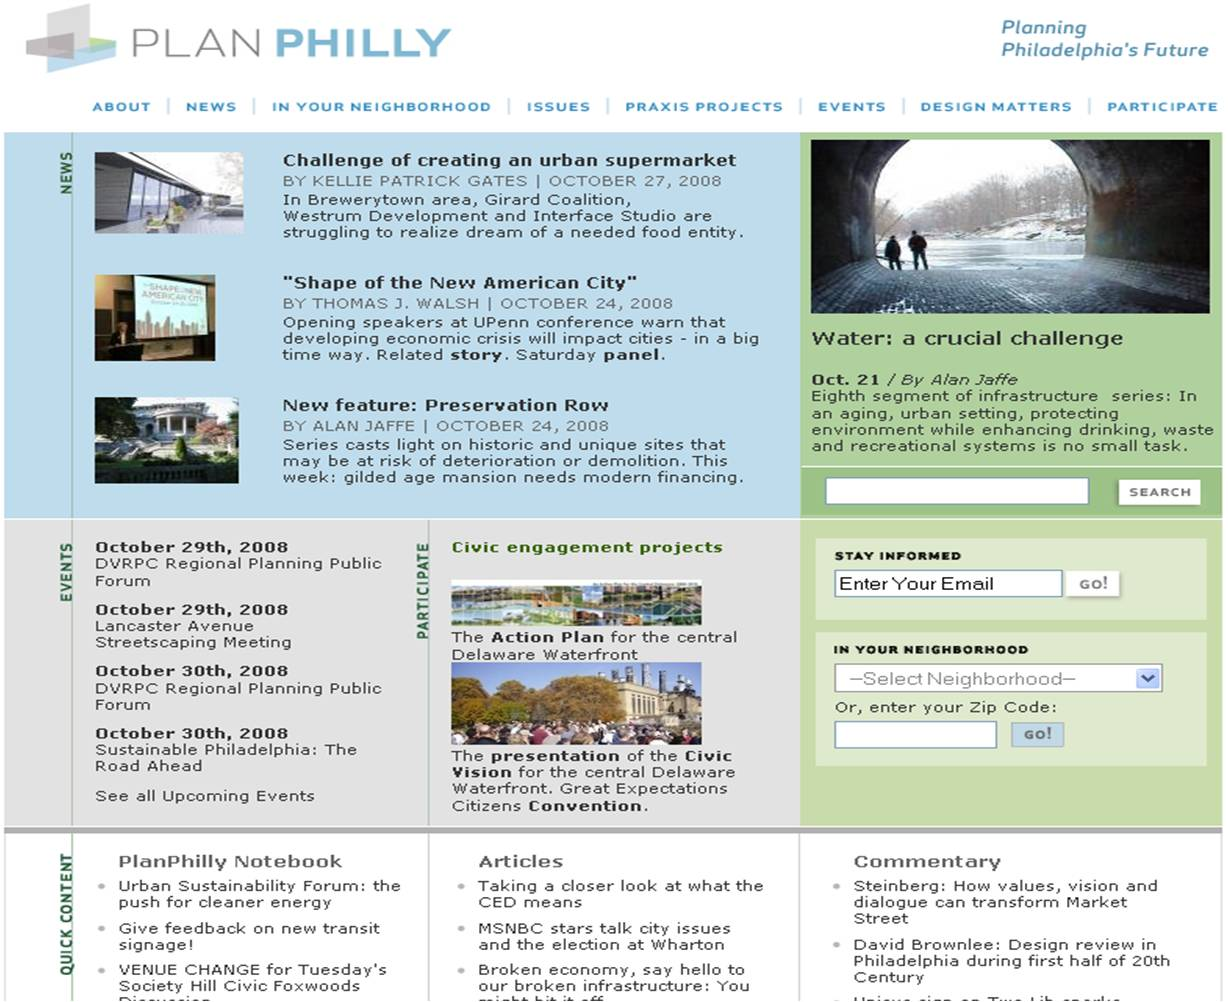 View http-planphilly-com-sites-planphilly-com-files-frontpage01-jpg jpg